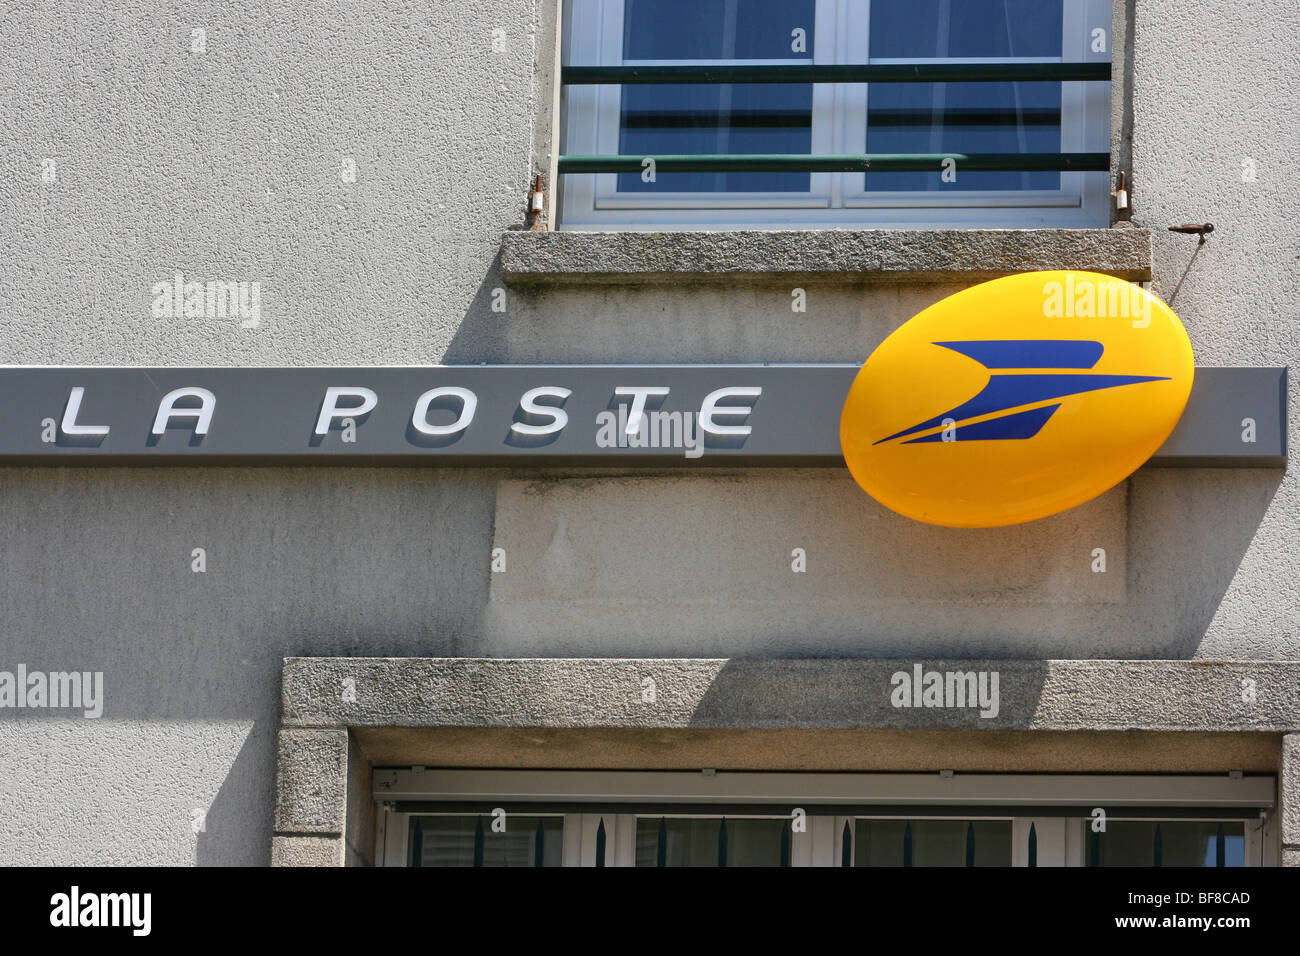 Office and logo of la poste the french postal service in the